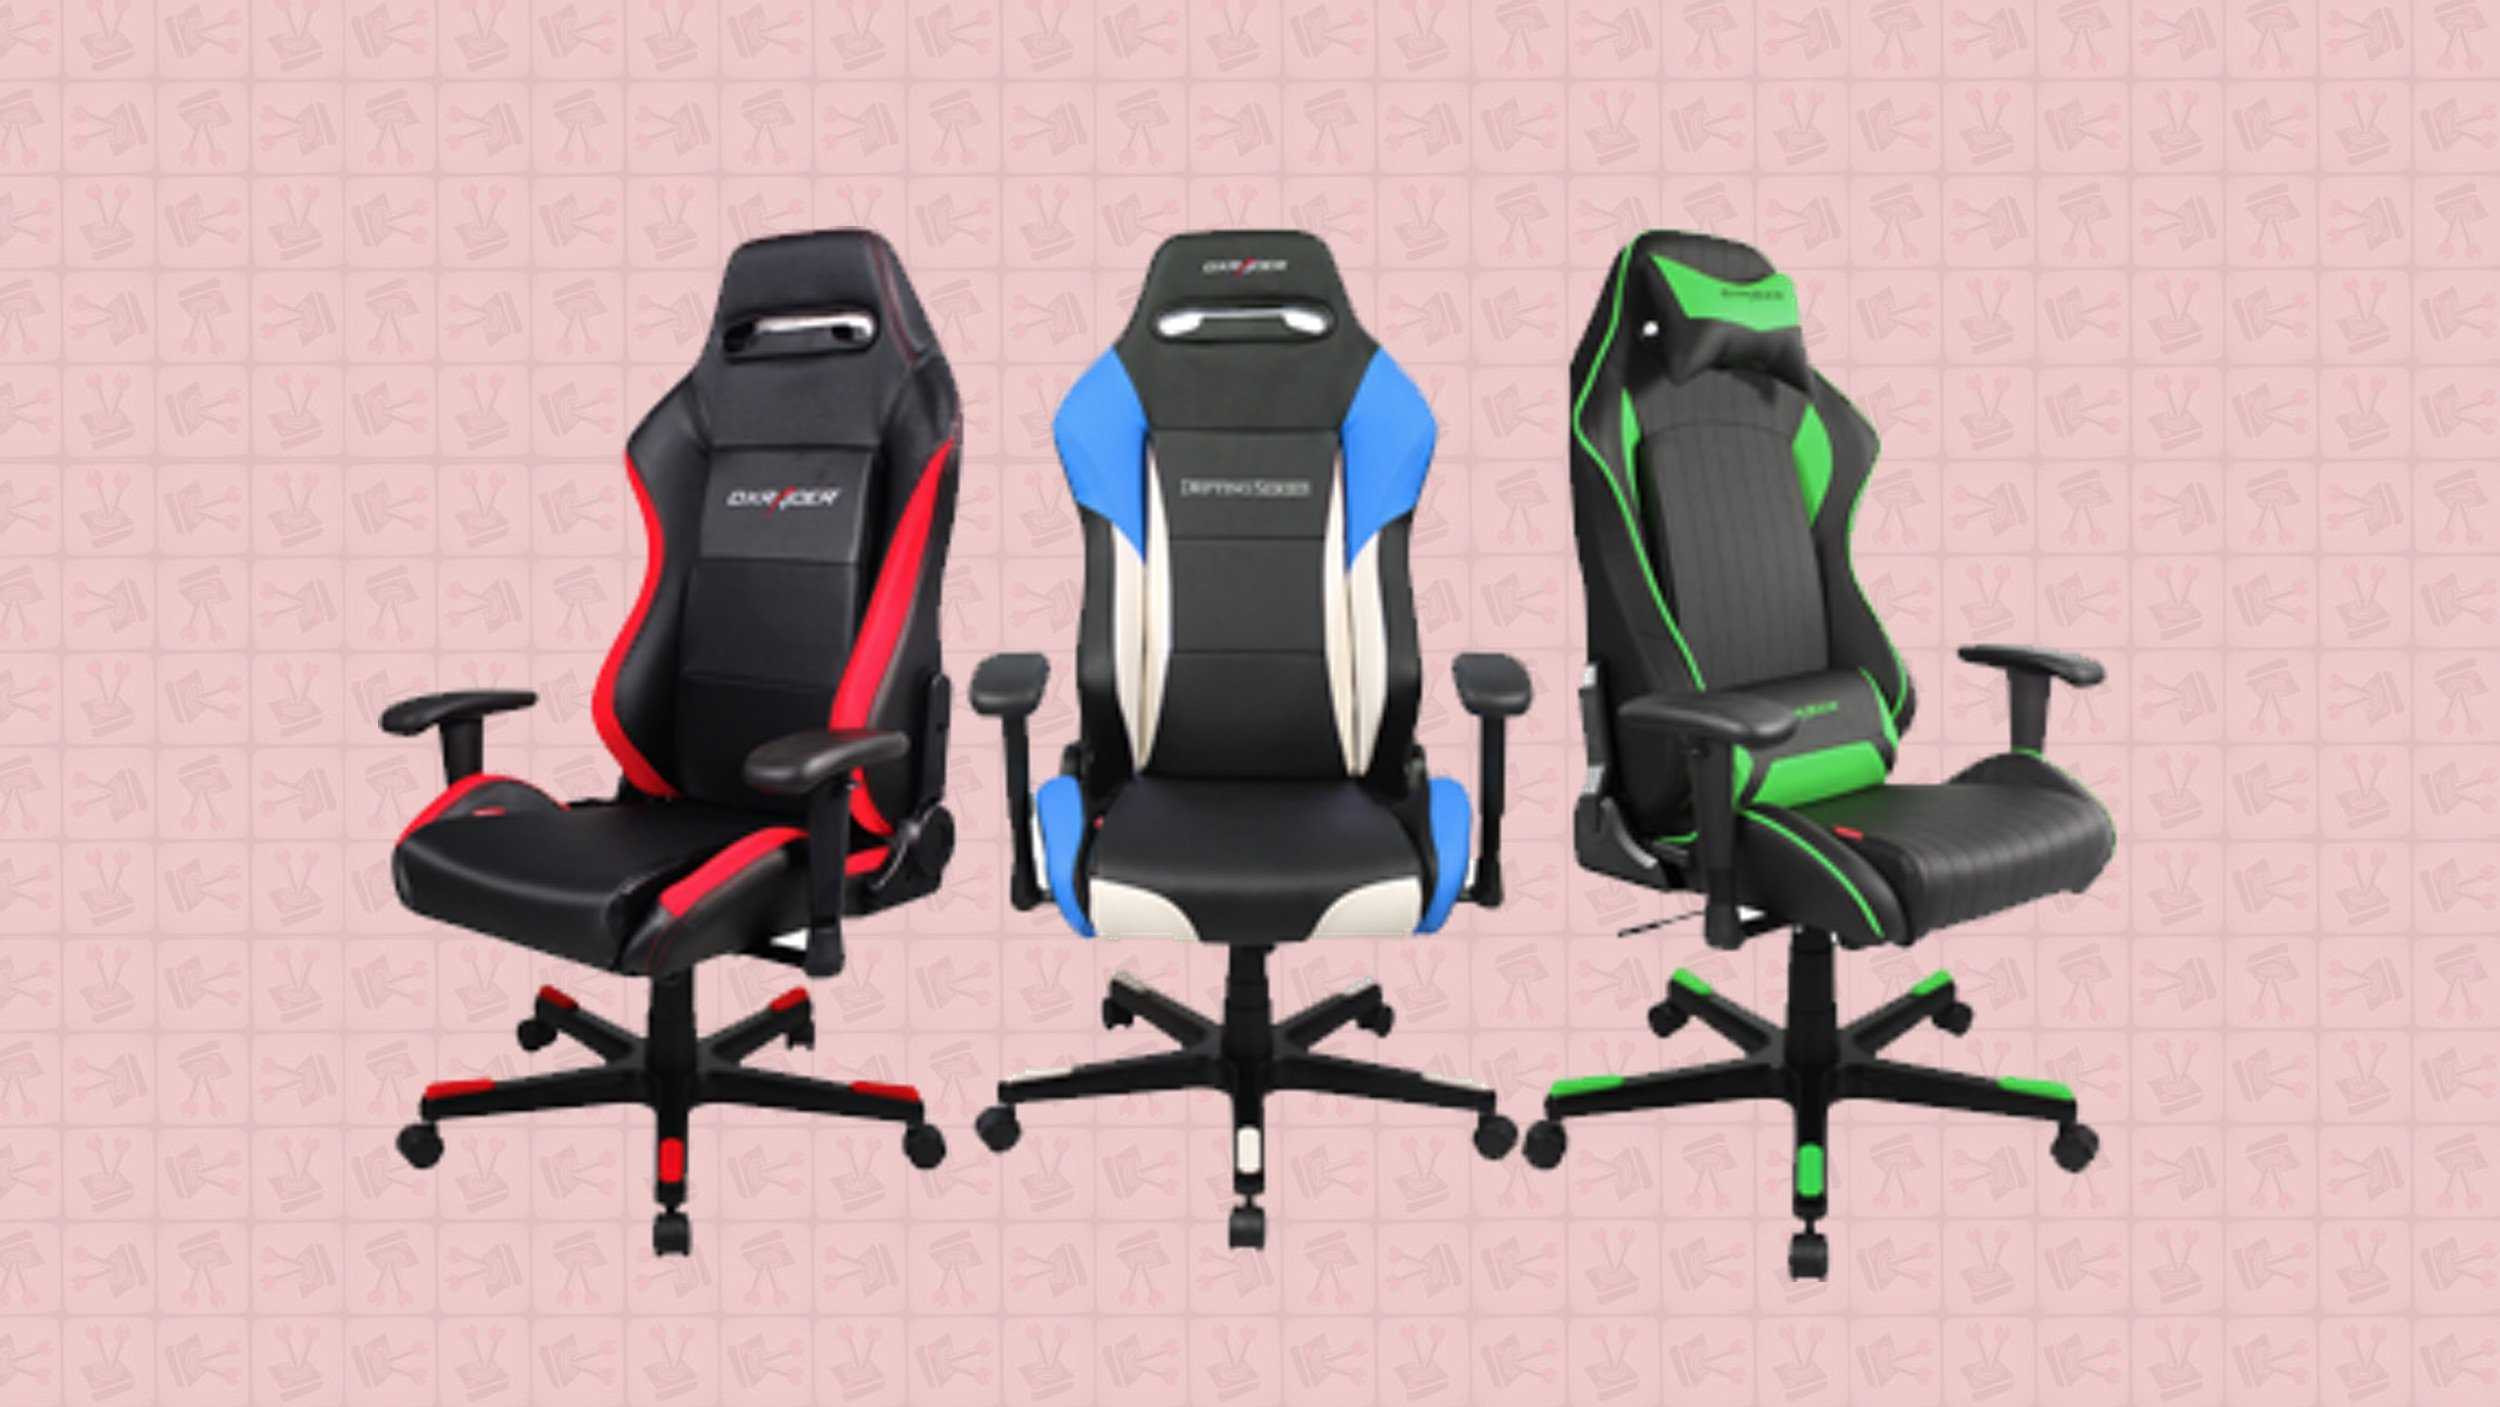 Dxr Chair Dxracer Chairs Now Available In South Africa Vamers